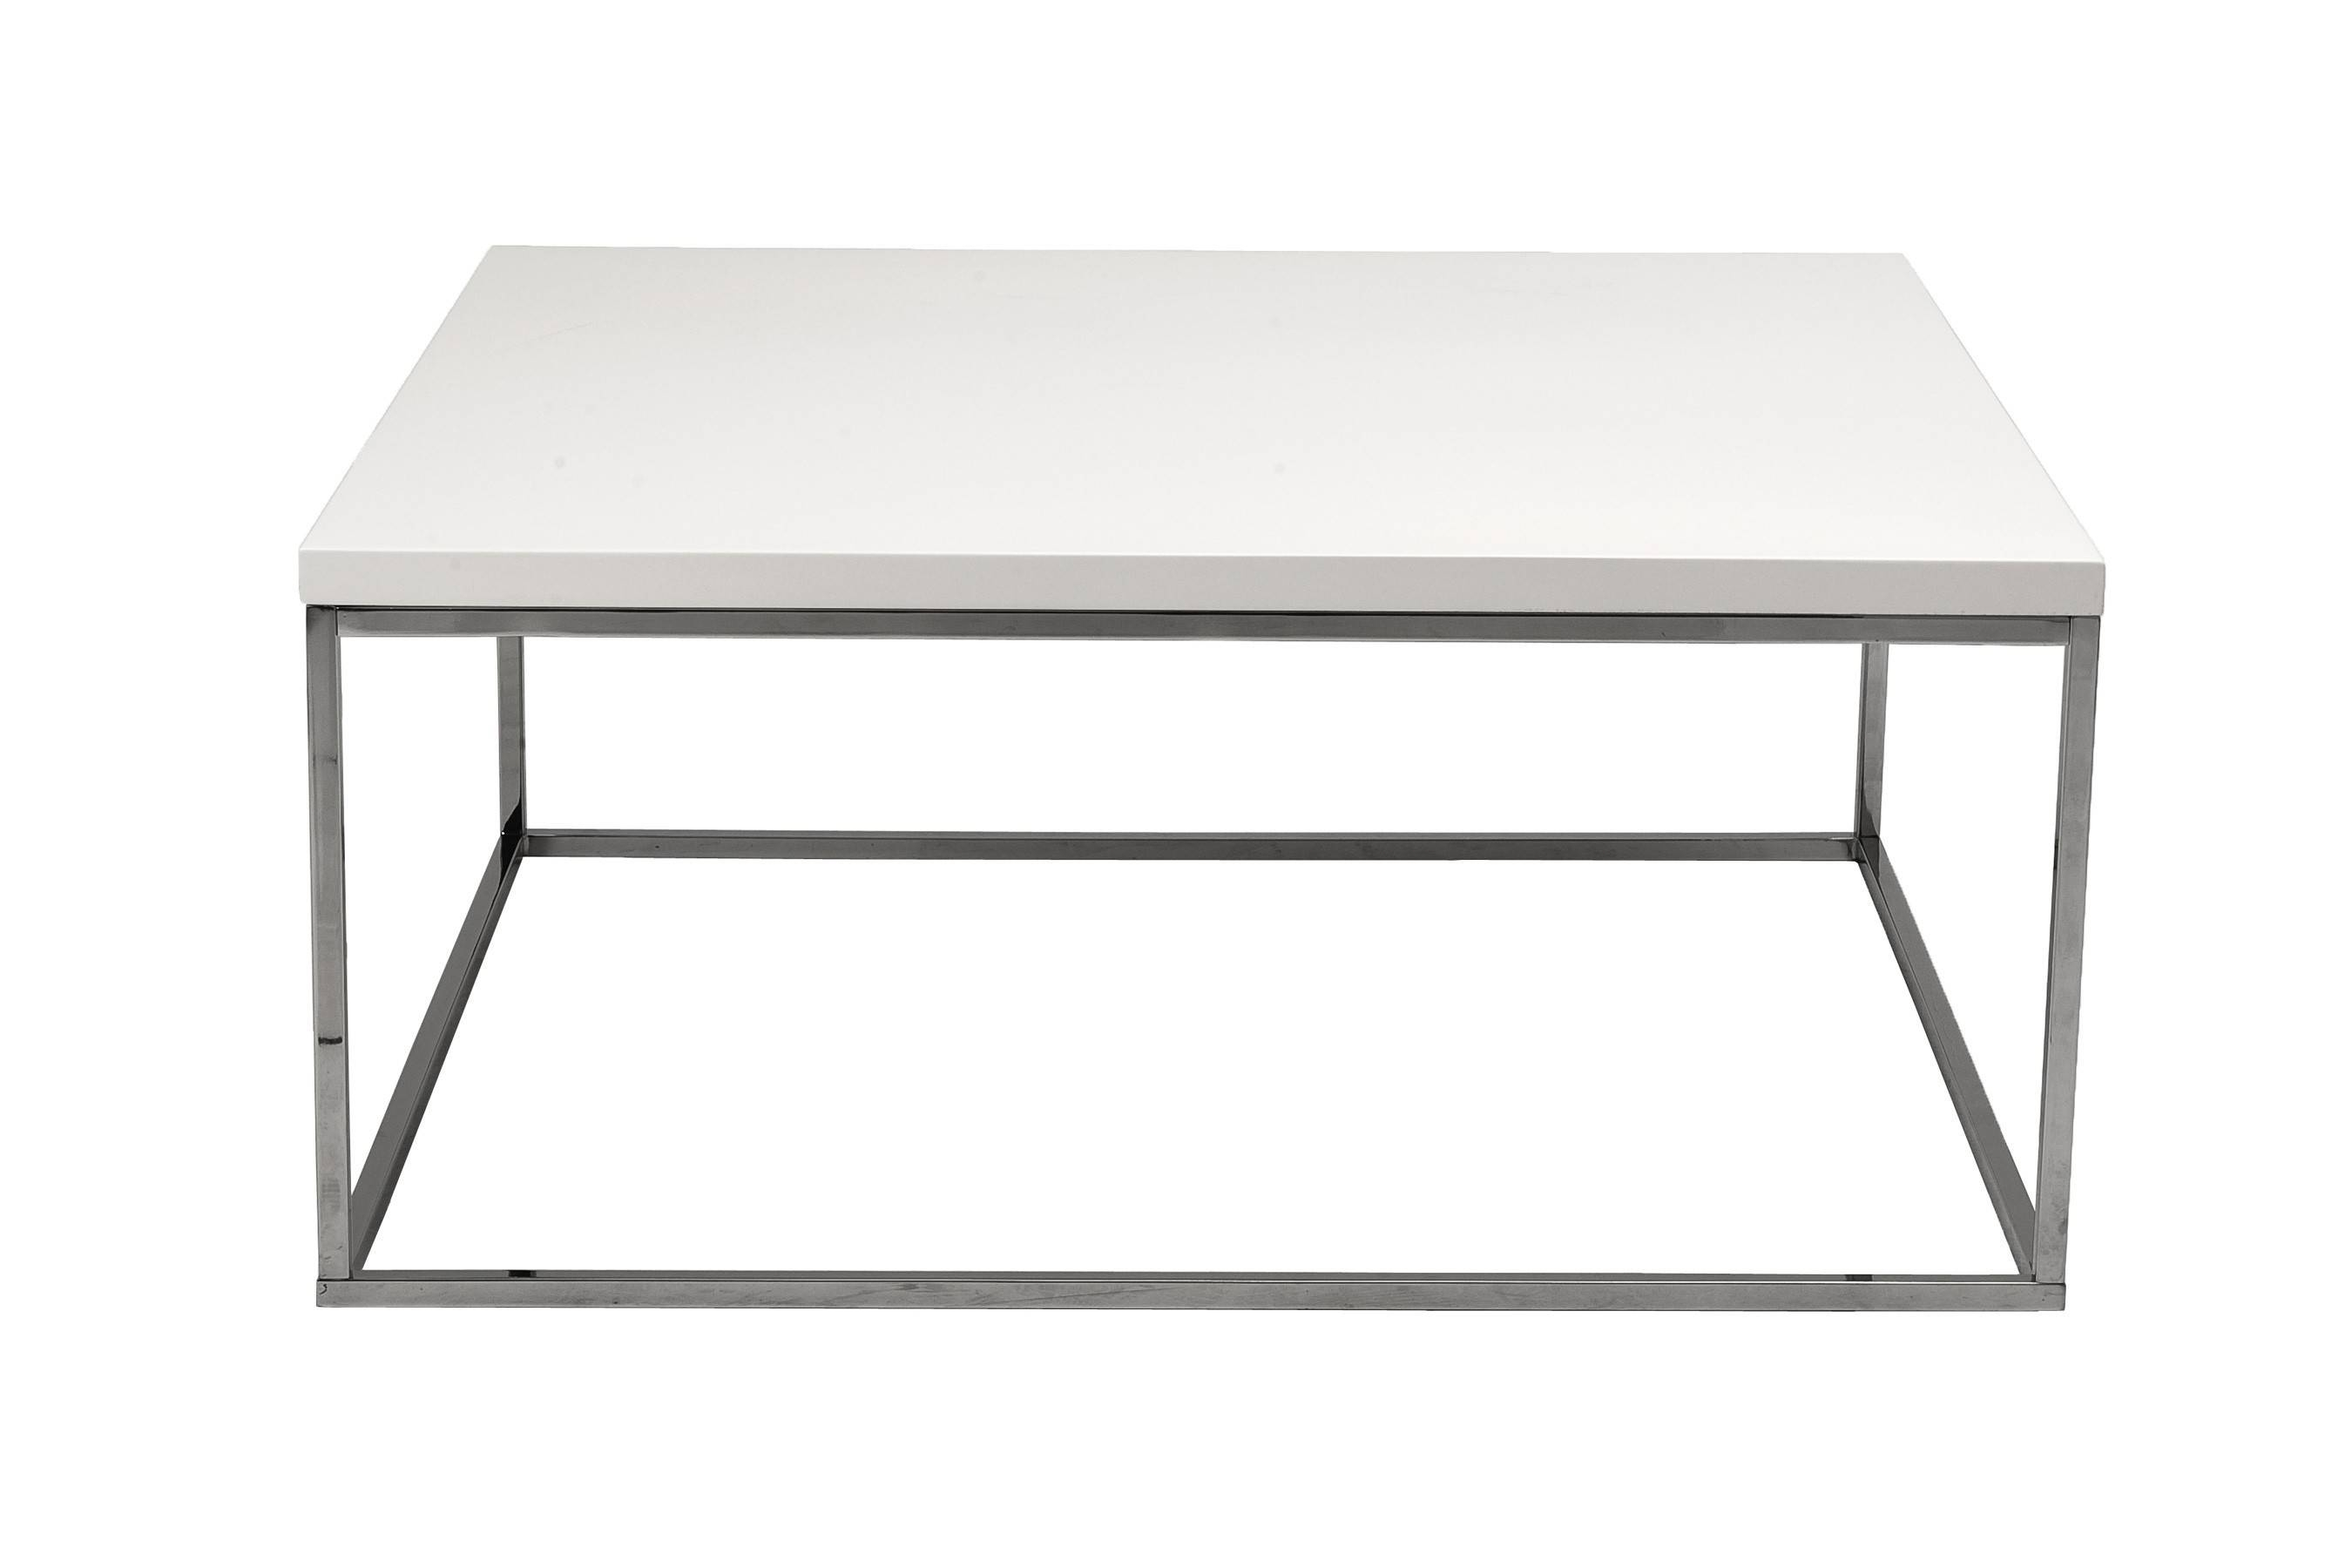 Furniture. Mesmerizing Square White Coffee Table Ideas: Modern intended for Square White Coffee Tables (Image 16 of 30)